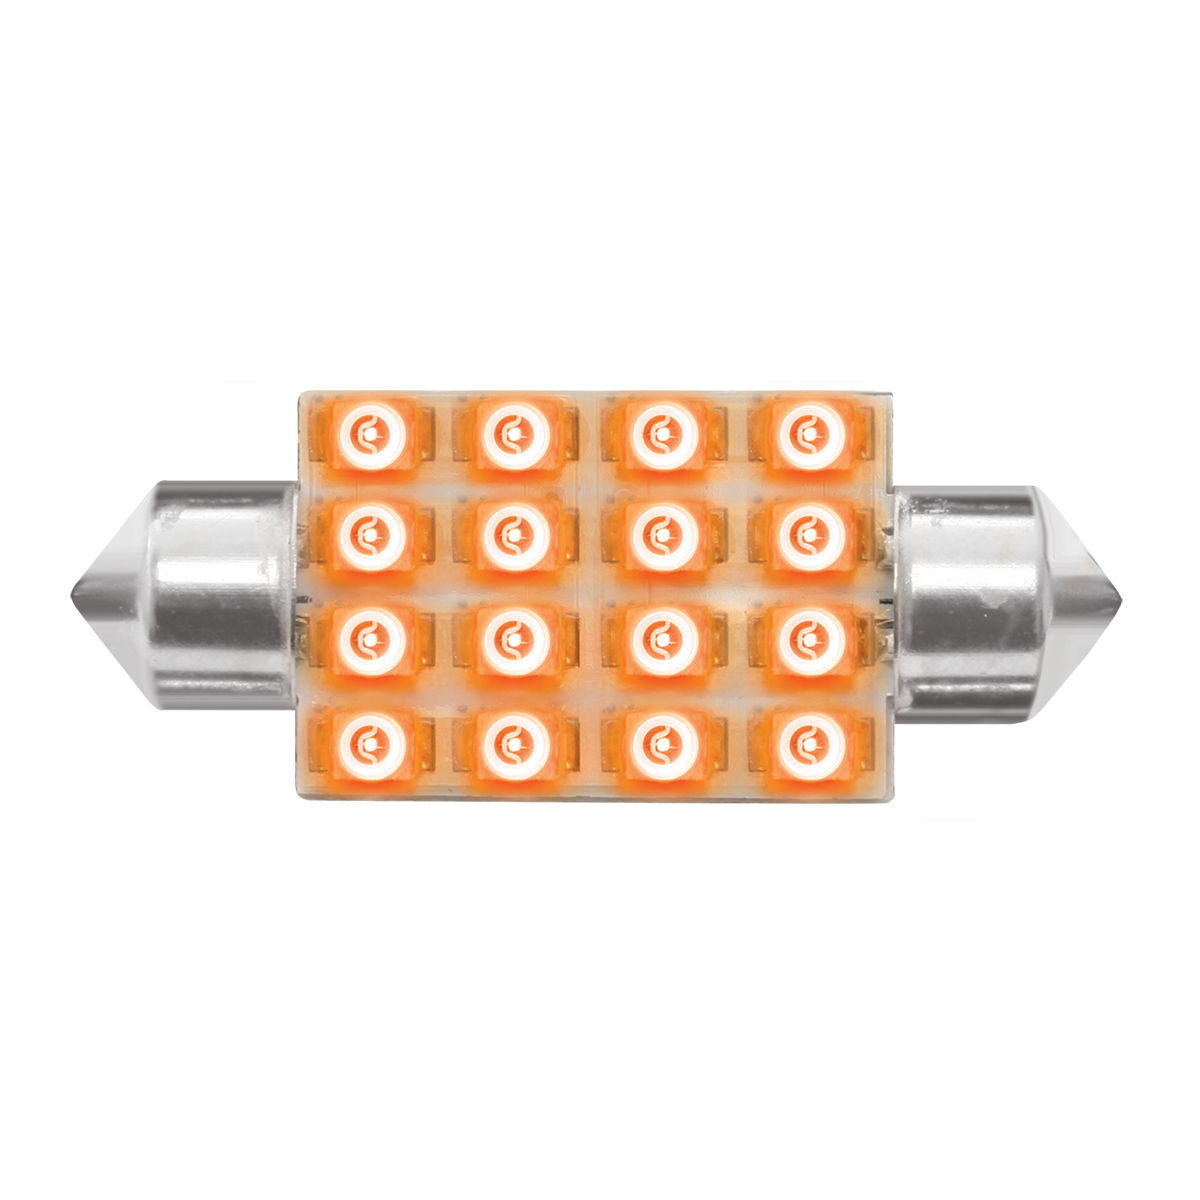 76100 Amber 211-2 Dome Type 16 LED Light Bulb